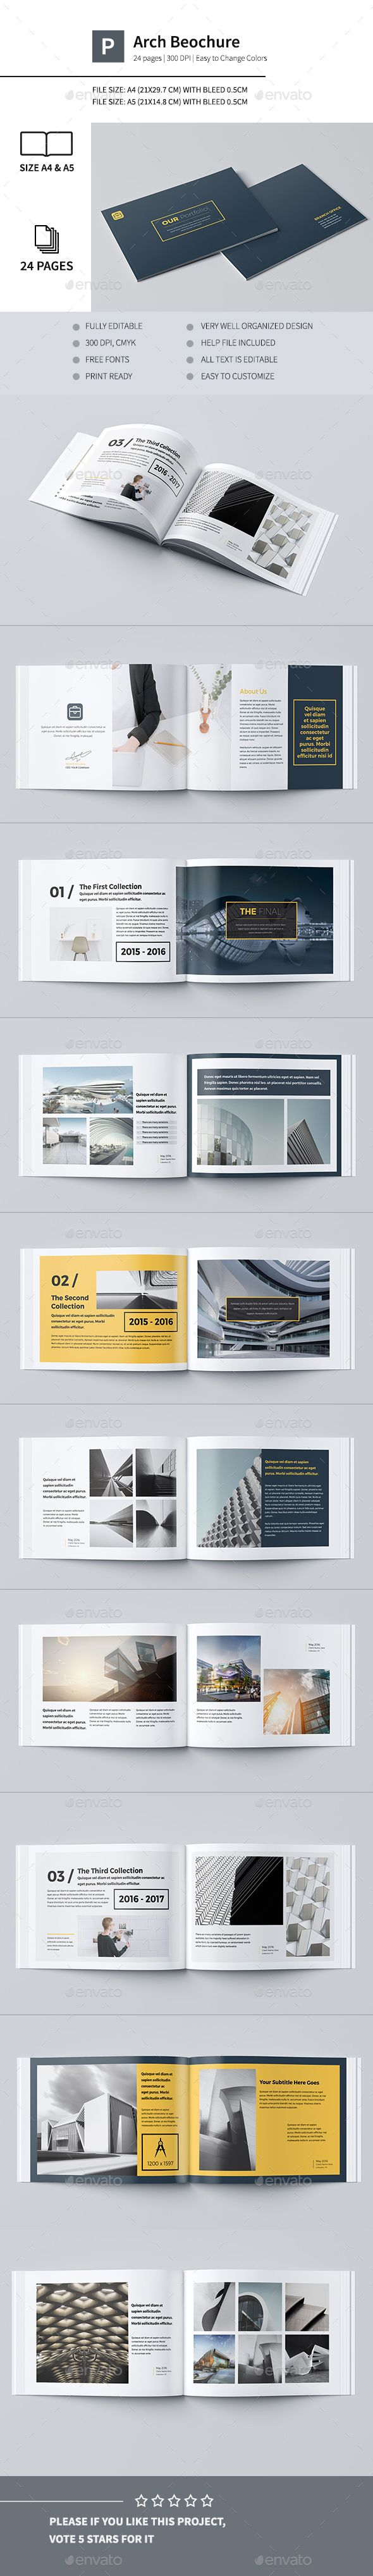 Our Portfolio Architecture 24 Pages A4 & A5 — InDesign INDD #blue #a5 • Available here → https://graphicriver.net/item/our-portfolio-architecture-24-pages-a4-a5/16254091?ref=pxcr